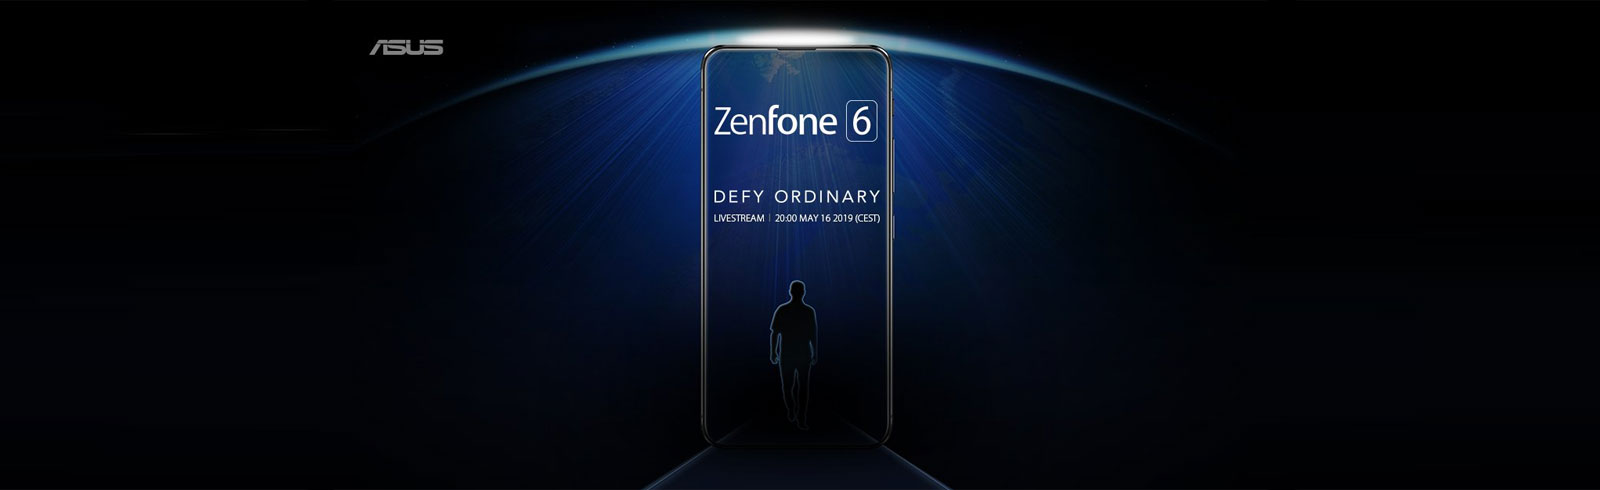 Asus teases the ZenFone 6 line of smartphones, will announce them on May 16